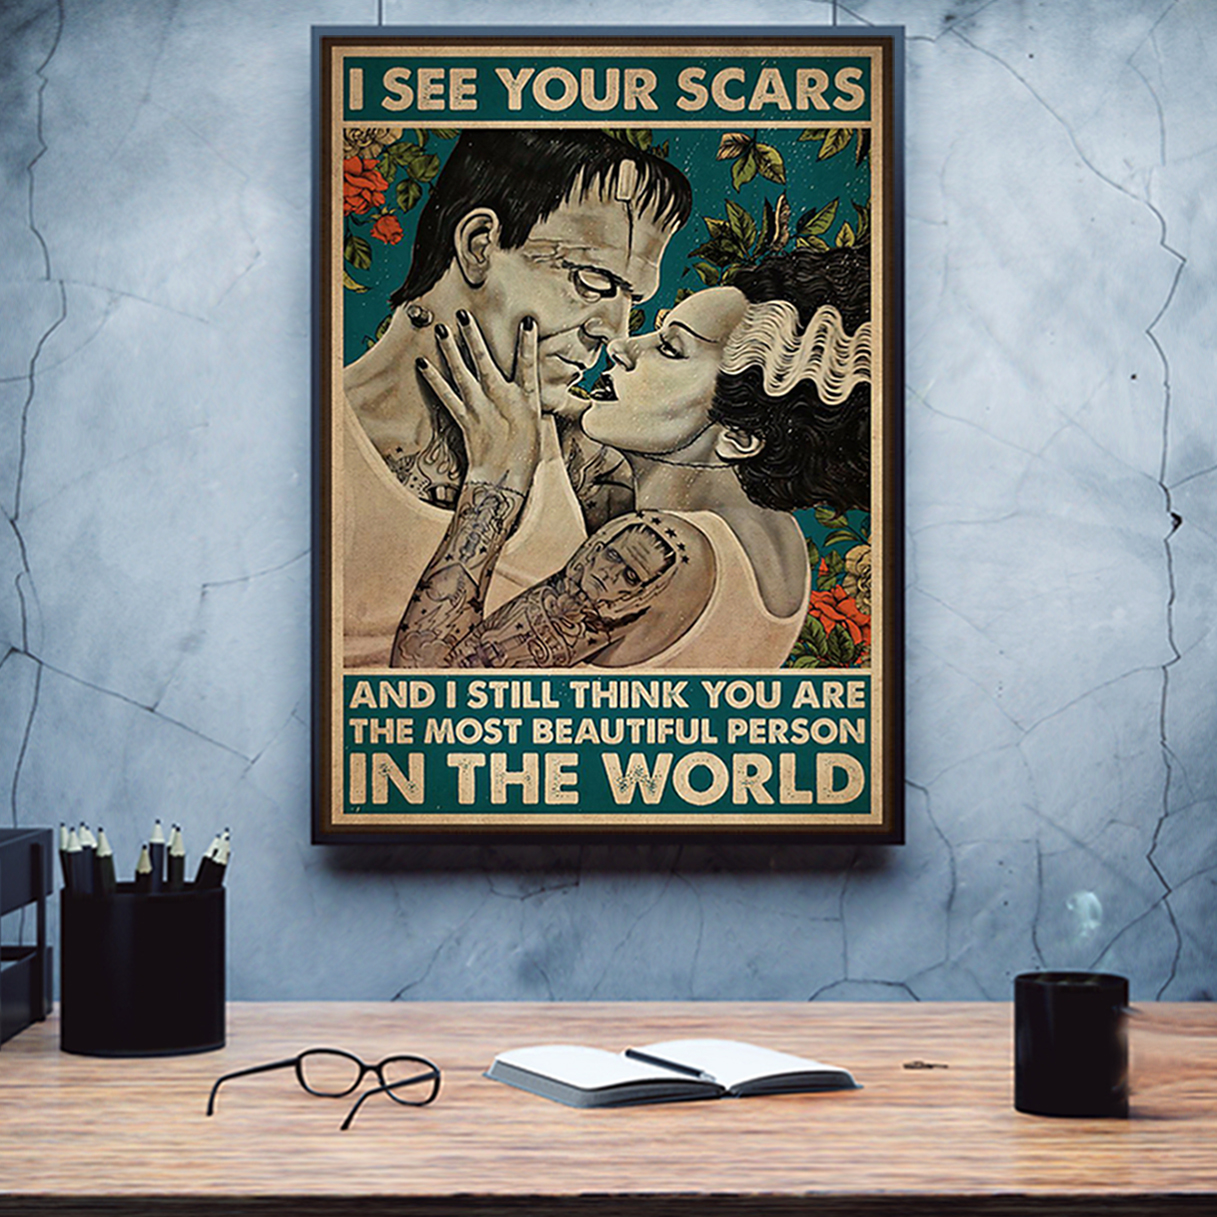 Frankenstein and bride I see your scars poster A2